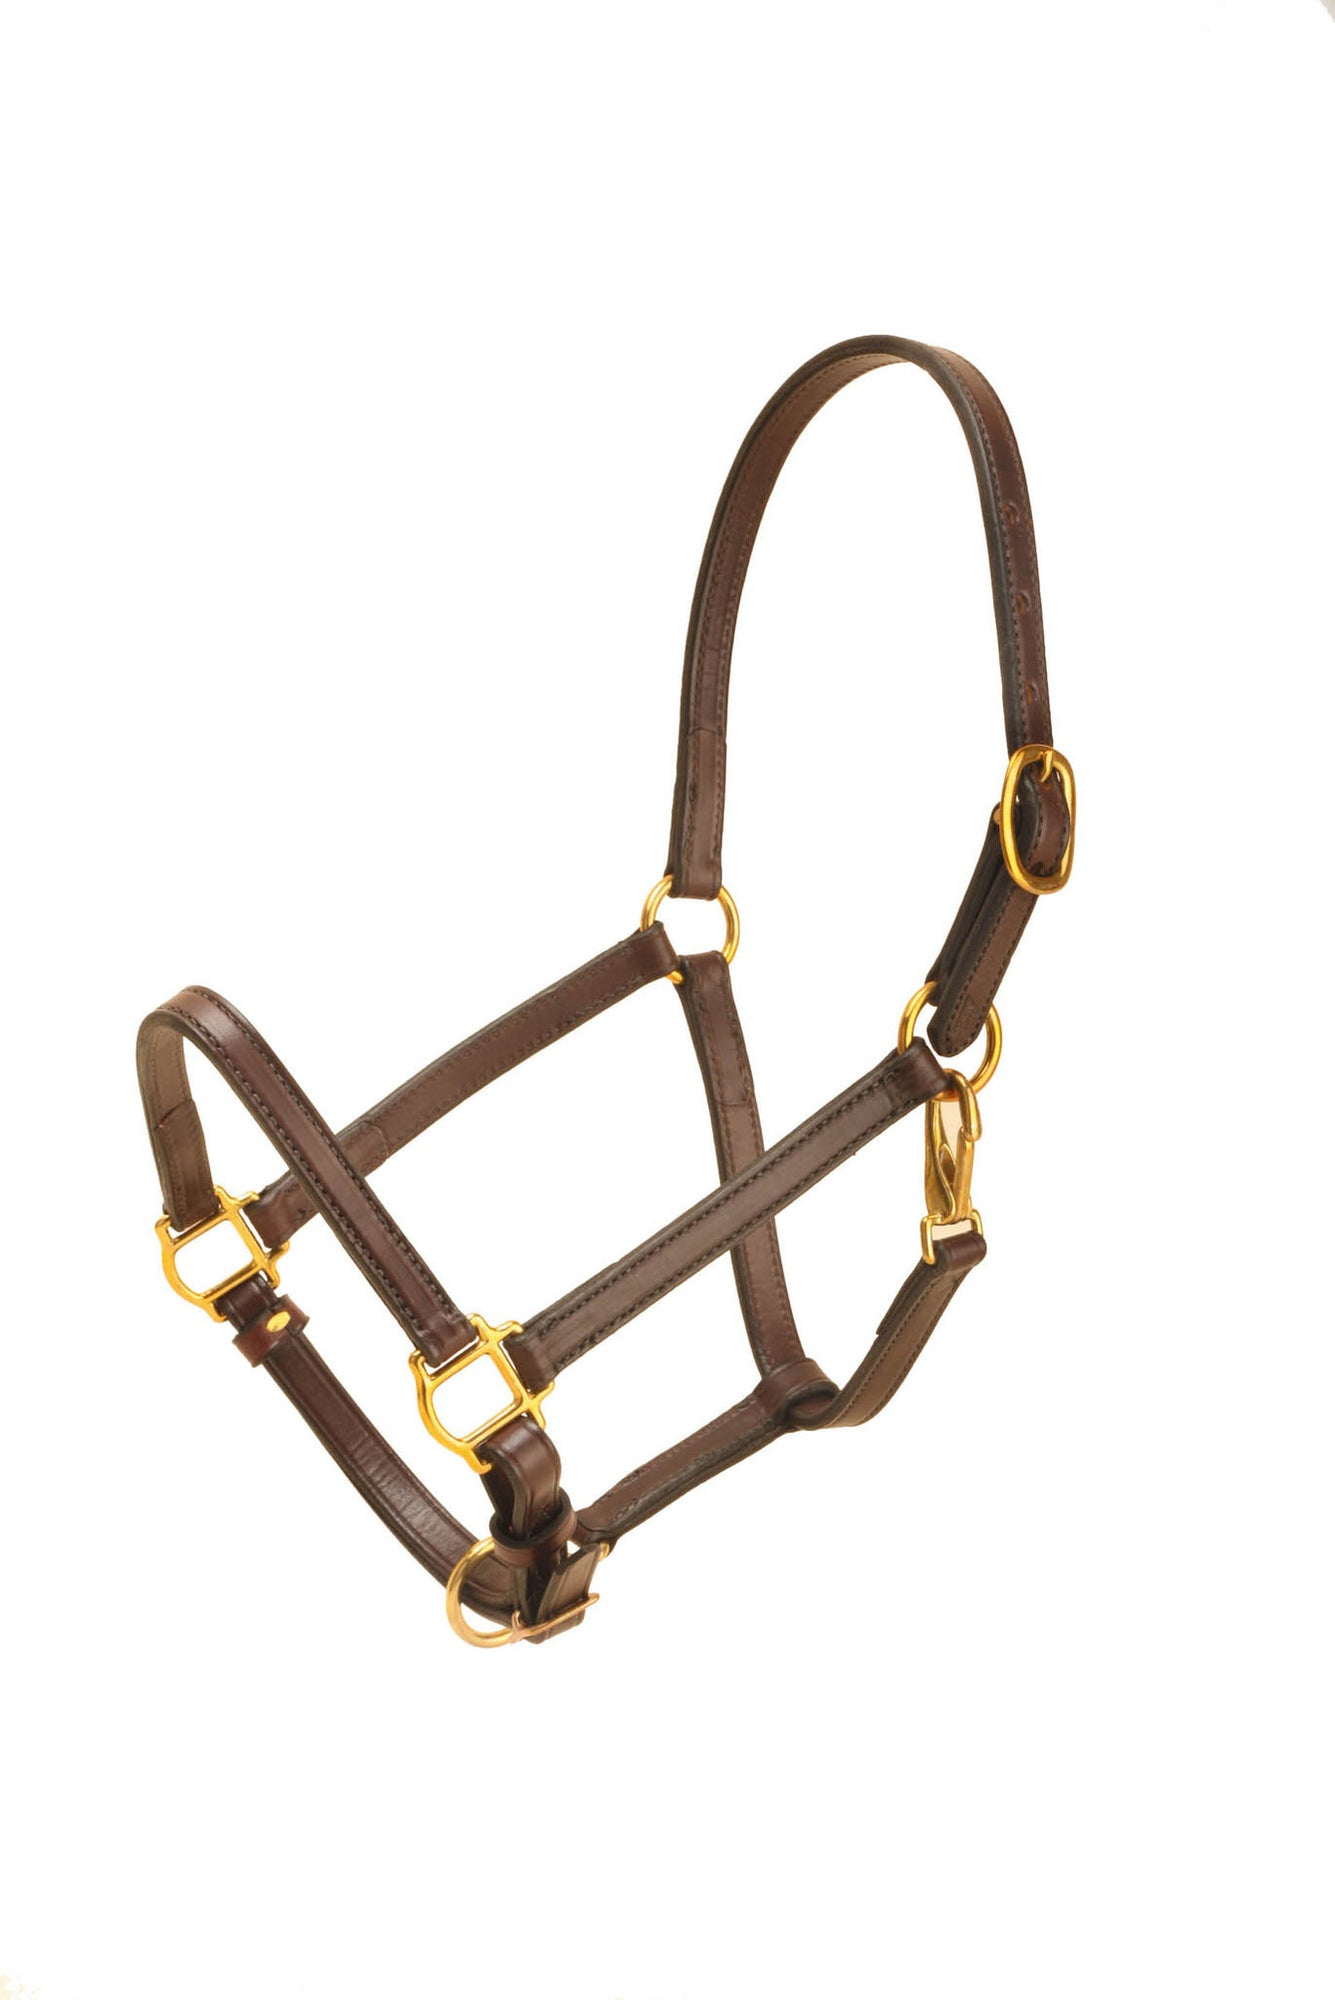 "Tory Leather 3/4"" Cob Halter Single Crown Buckle, Snap Throat"